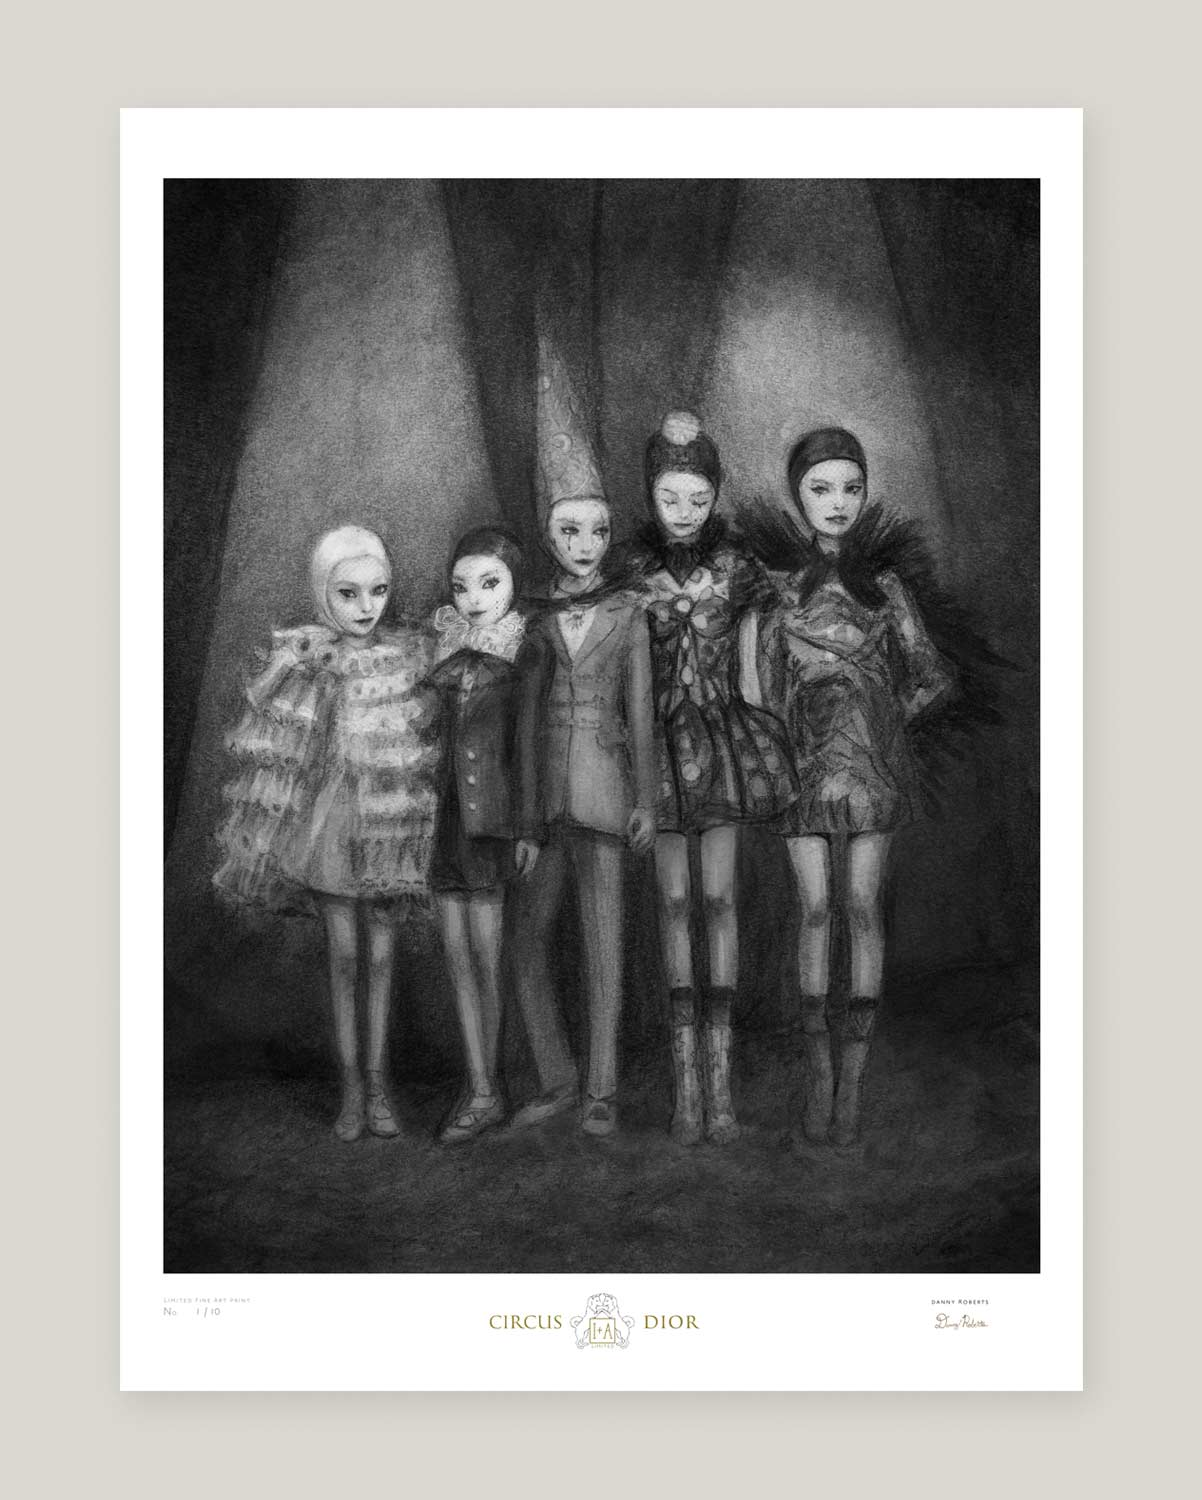 Artist Danny Roberts Circus Christian Dior limited edition Print